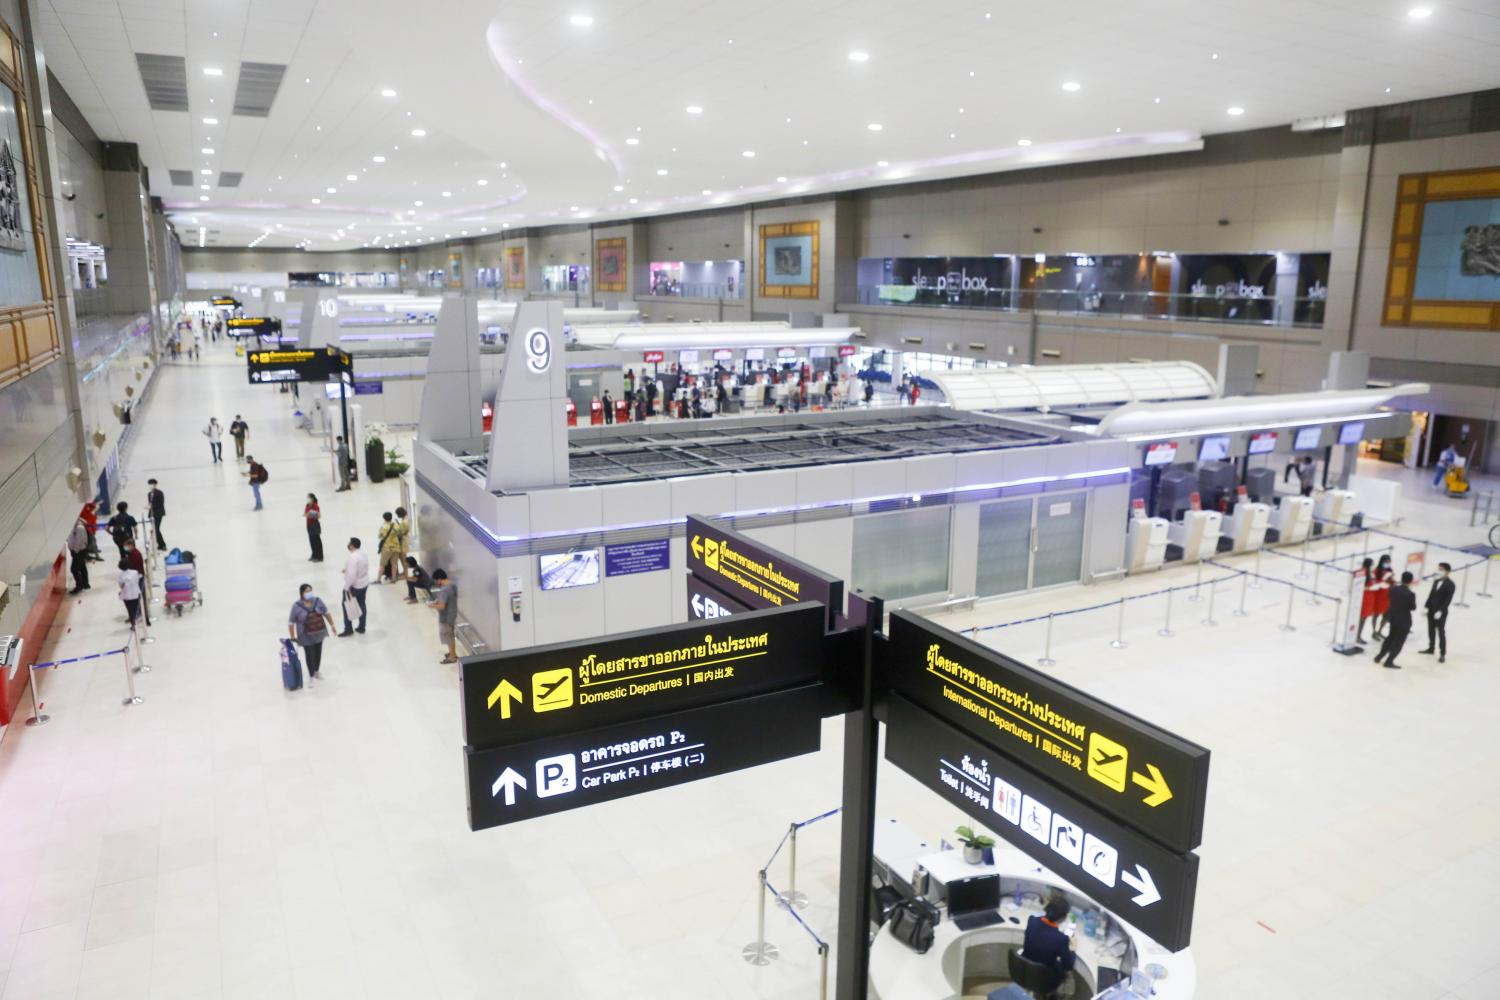 Don Mueang airport, the hub for Thai AirAsia's services, has seen passenger numbers collapse this year because of the coronavirus outbreak.(Photo by Pattarapong Chatpattarasill)